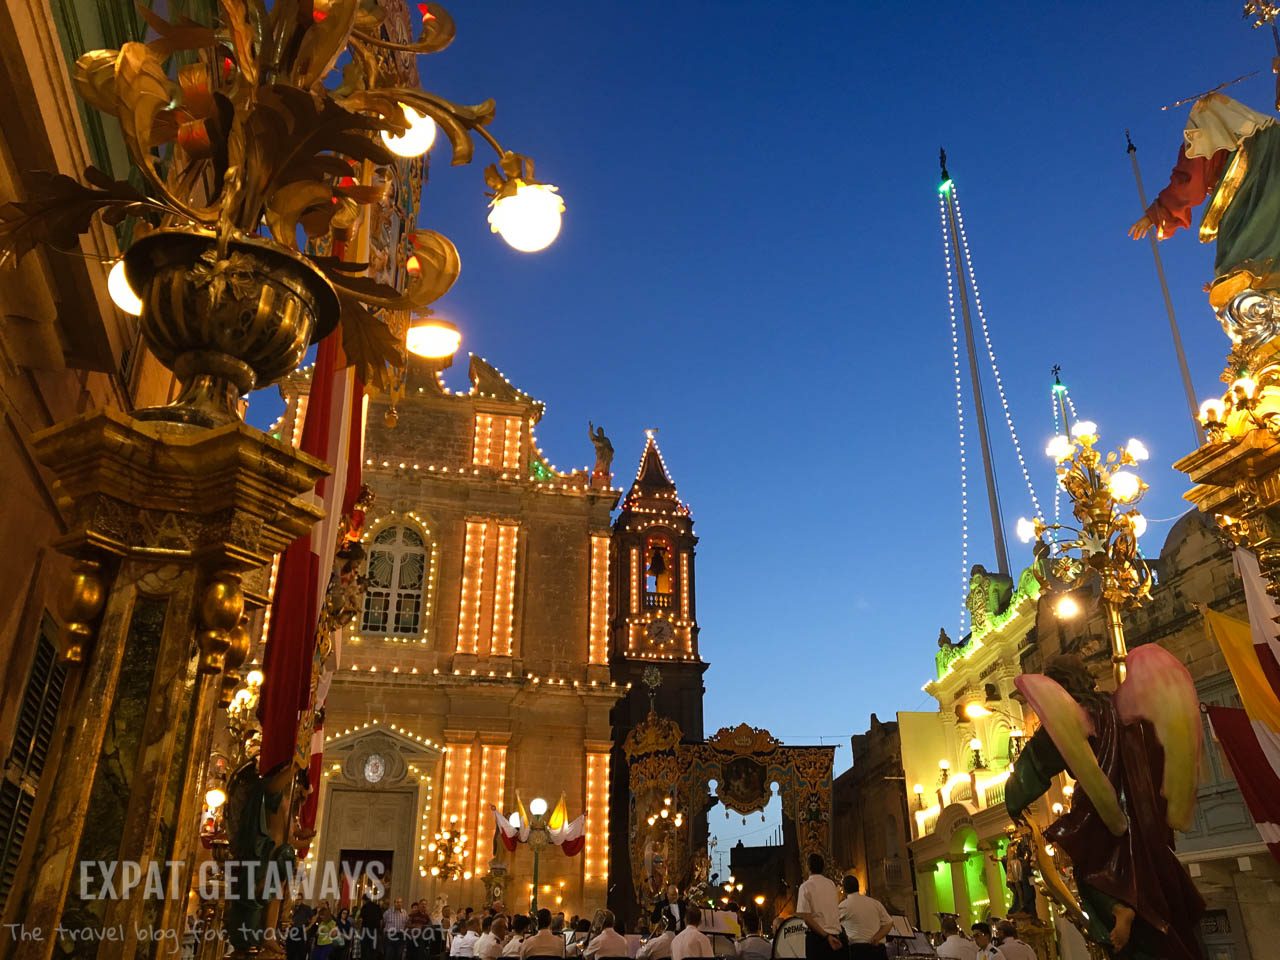 We stumbled on a festa in the town on Hal Gaxaq, Malta.